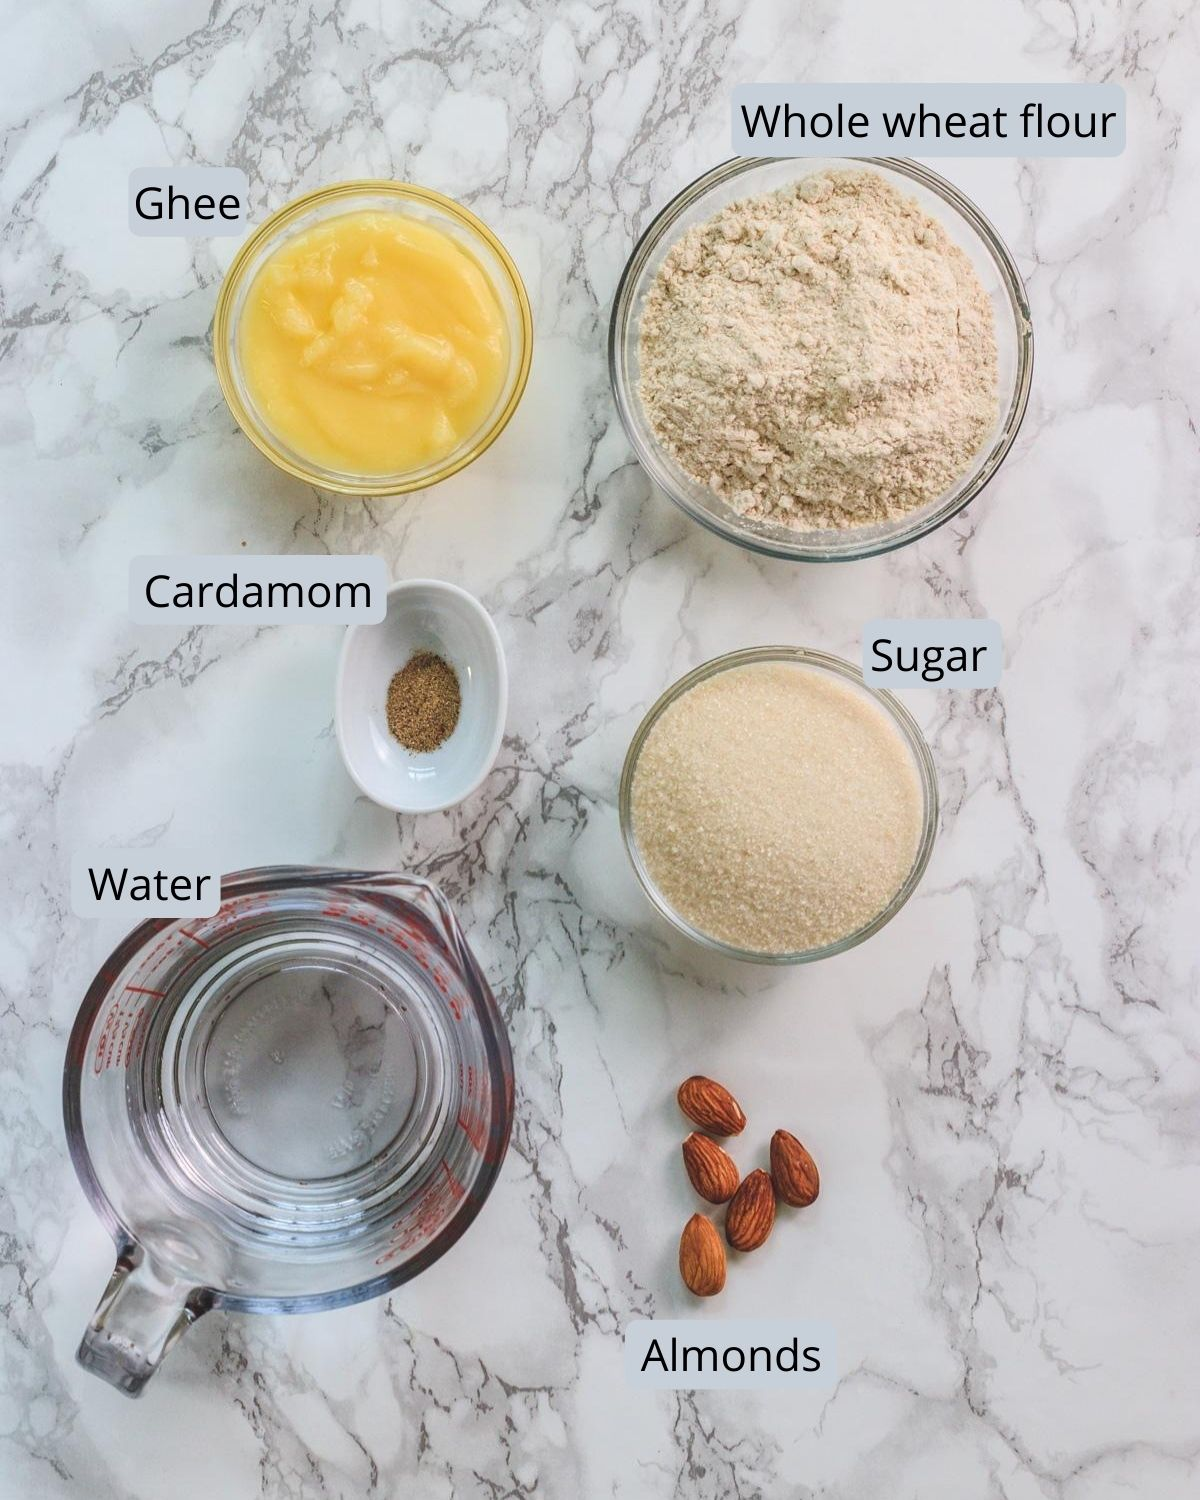 Image of ingredients used in atta hawal includes wheat flour, sugar, ghee, water, cardamom and almonds